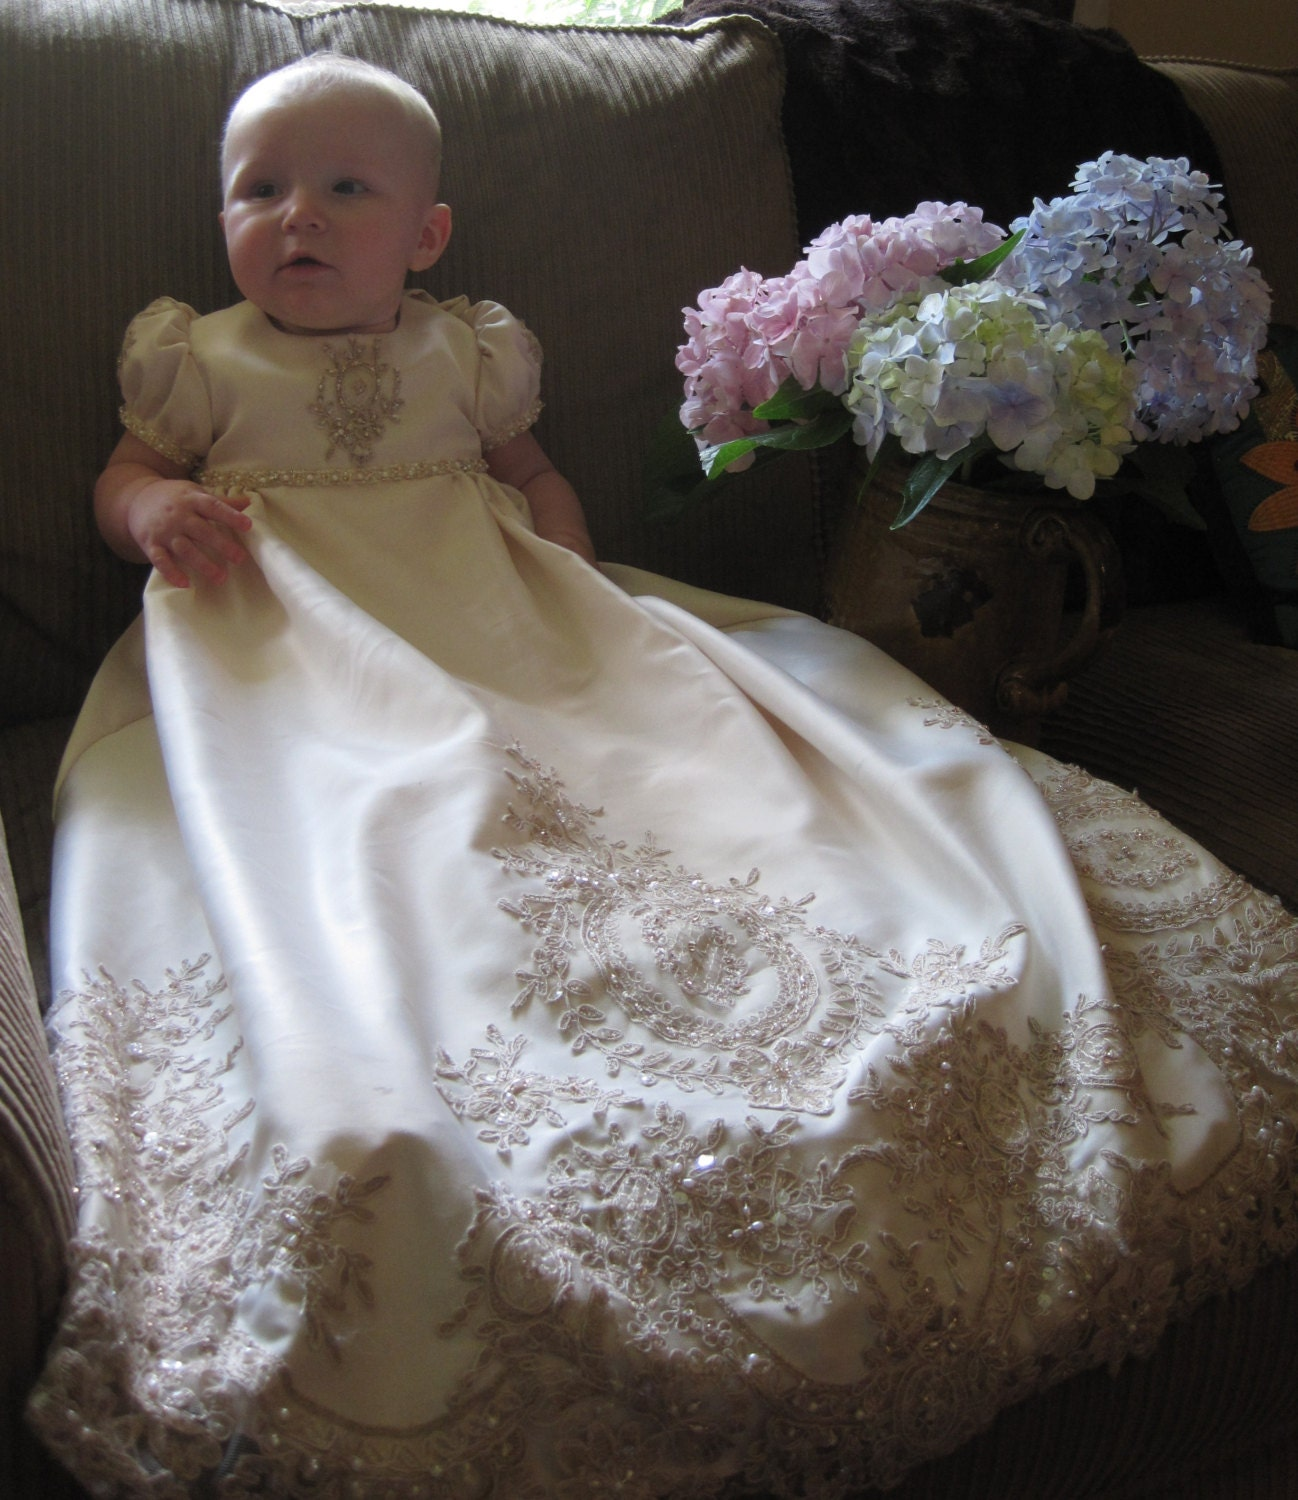 Christening Gowns From Wedding Dresses: Emma's Custom Christening Or Baptism Gown Made To Order